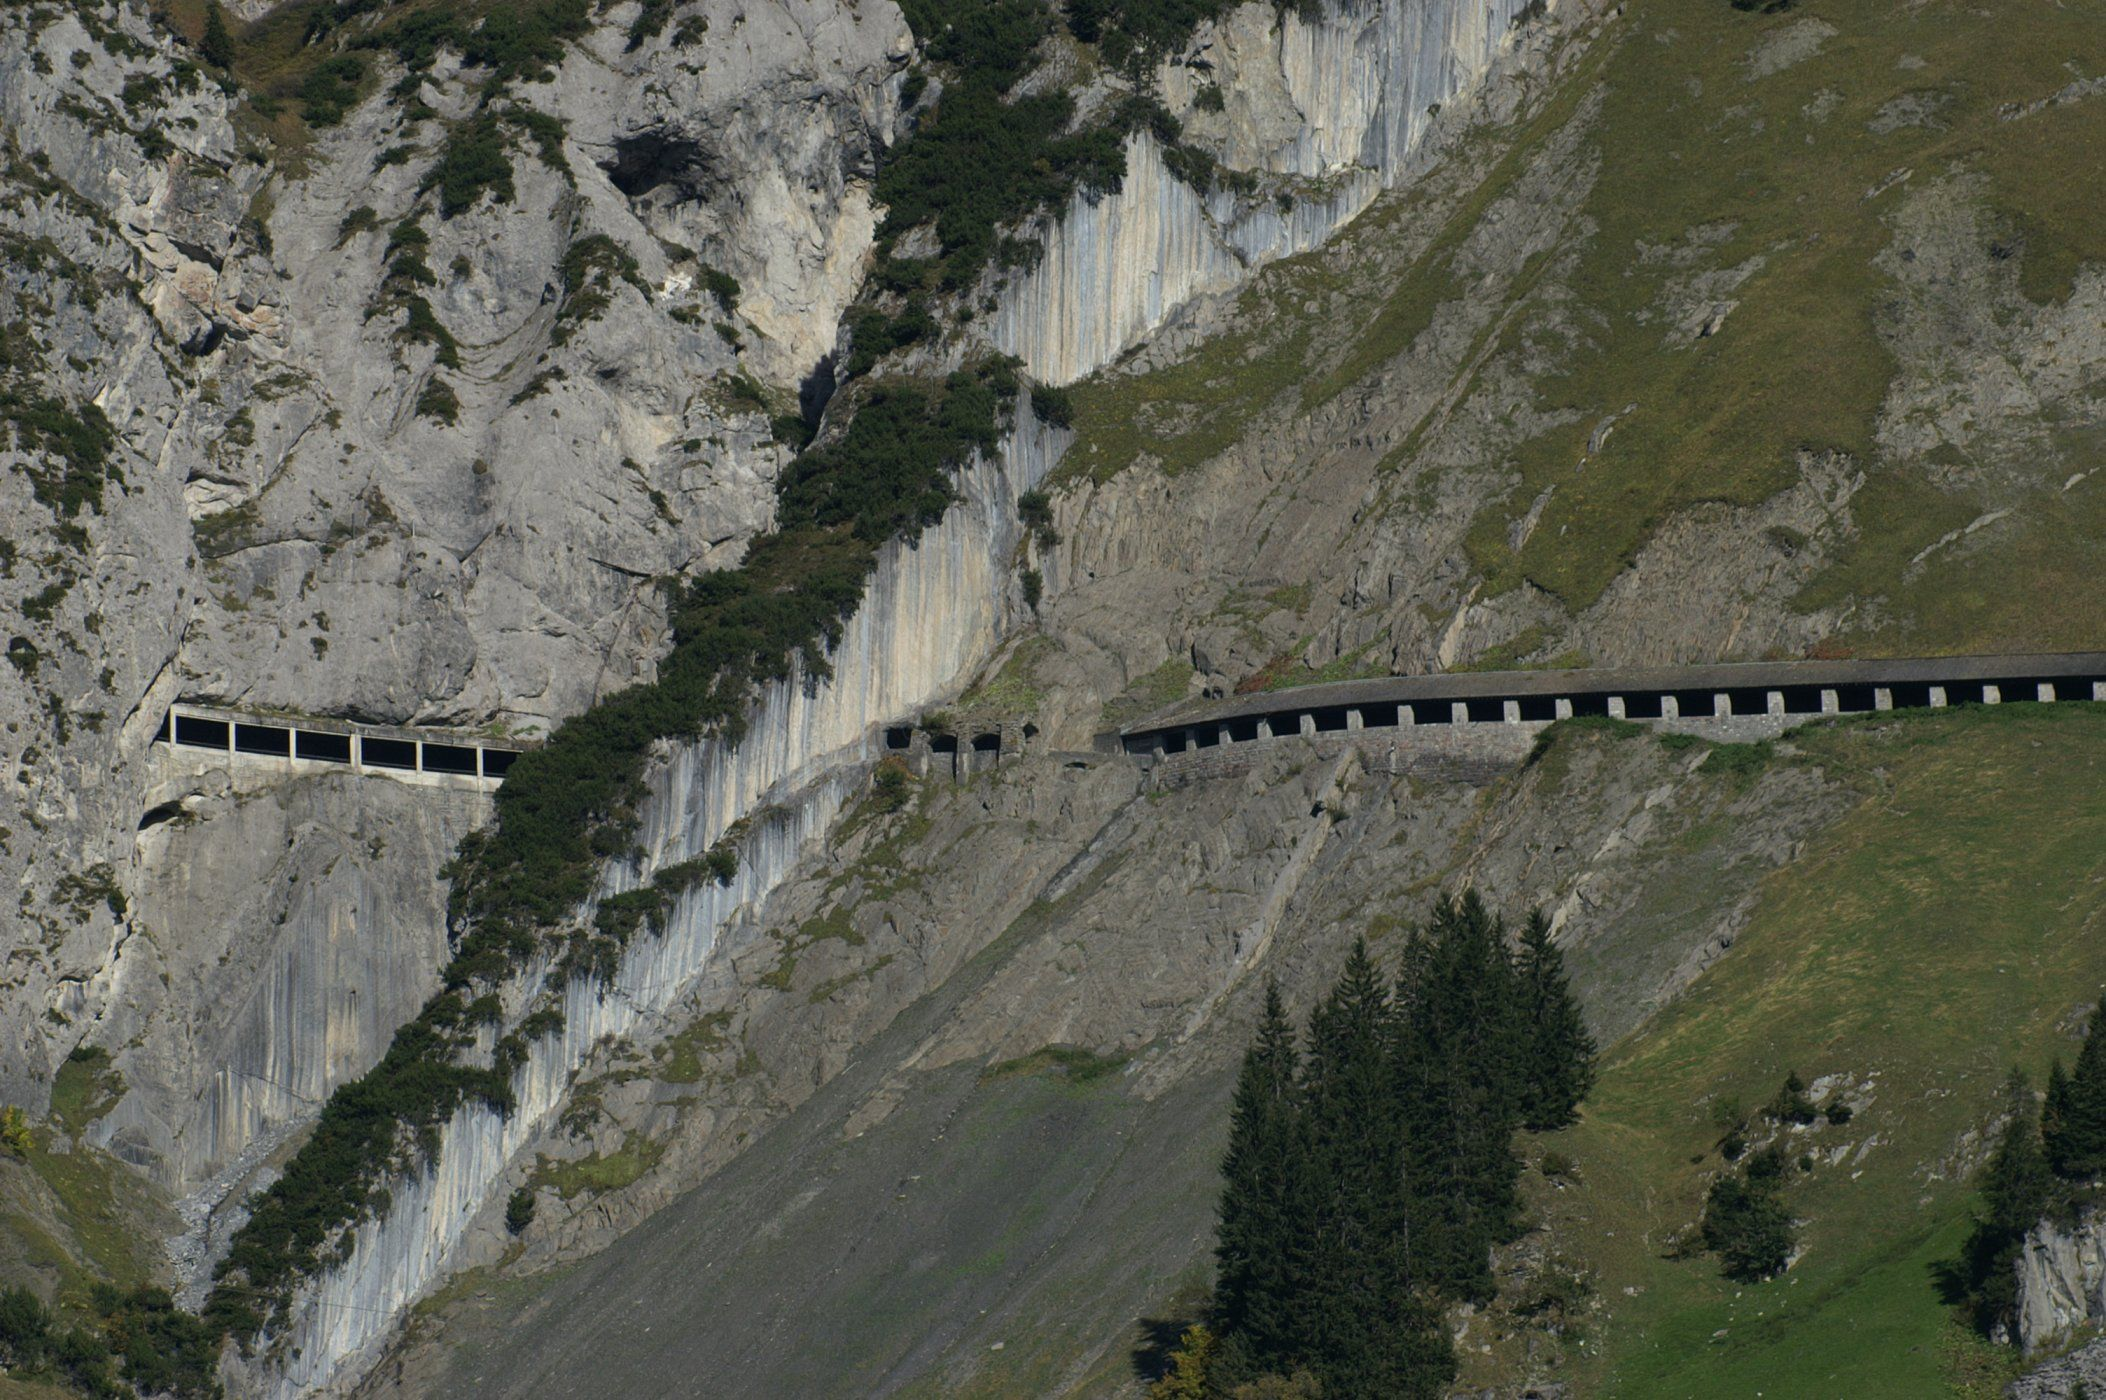 The Most Beautiful Passes In The European Alps Flexenpass 5 818 Ft 1 773 M Autocar